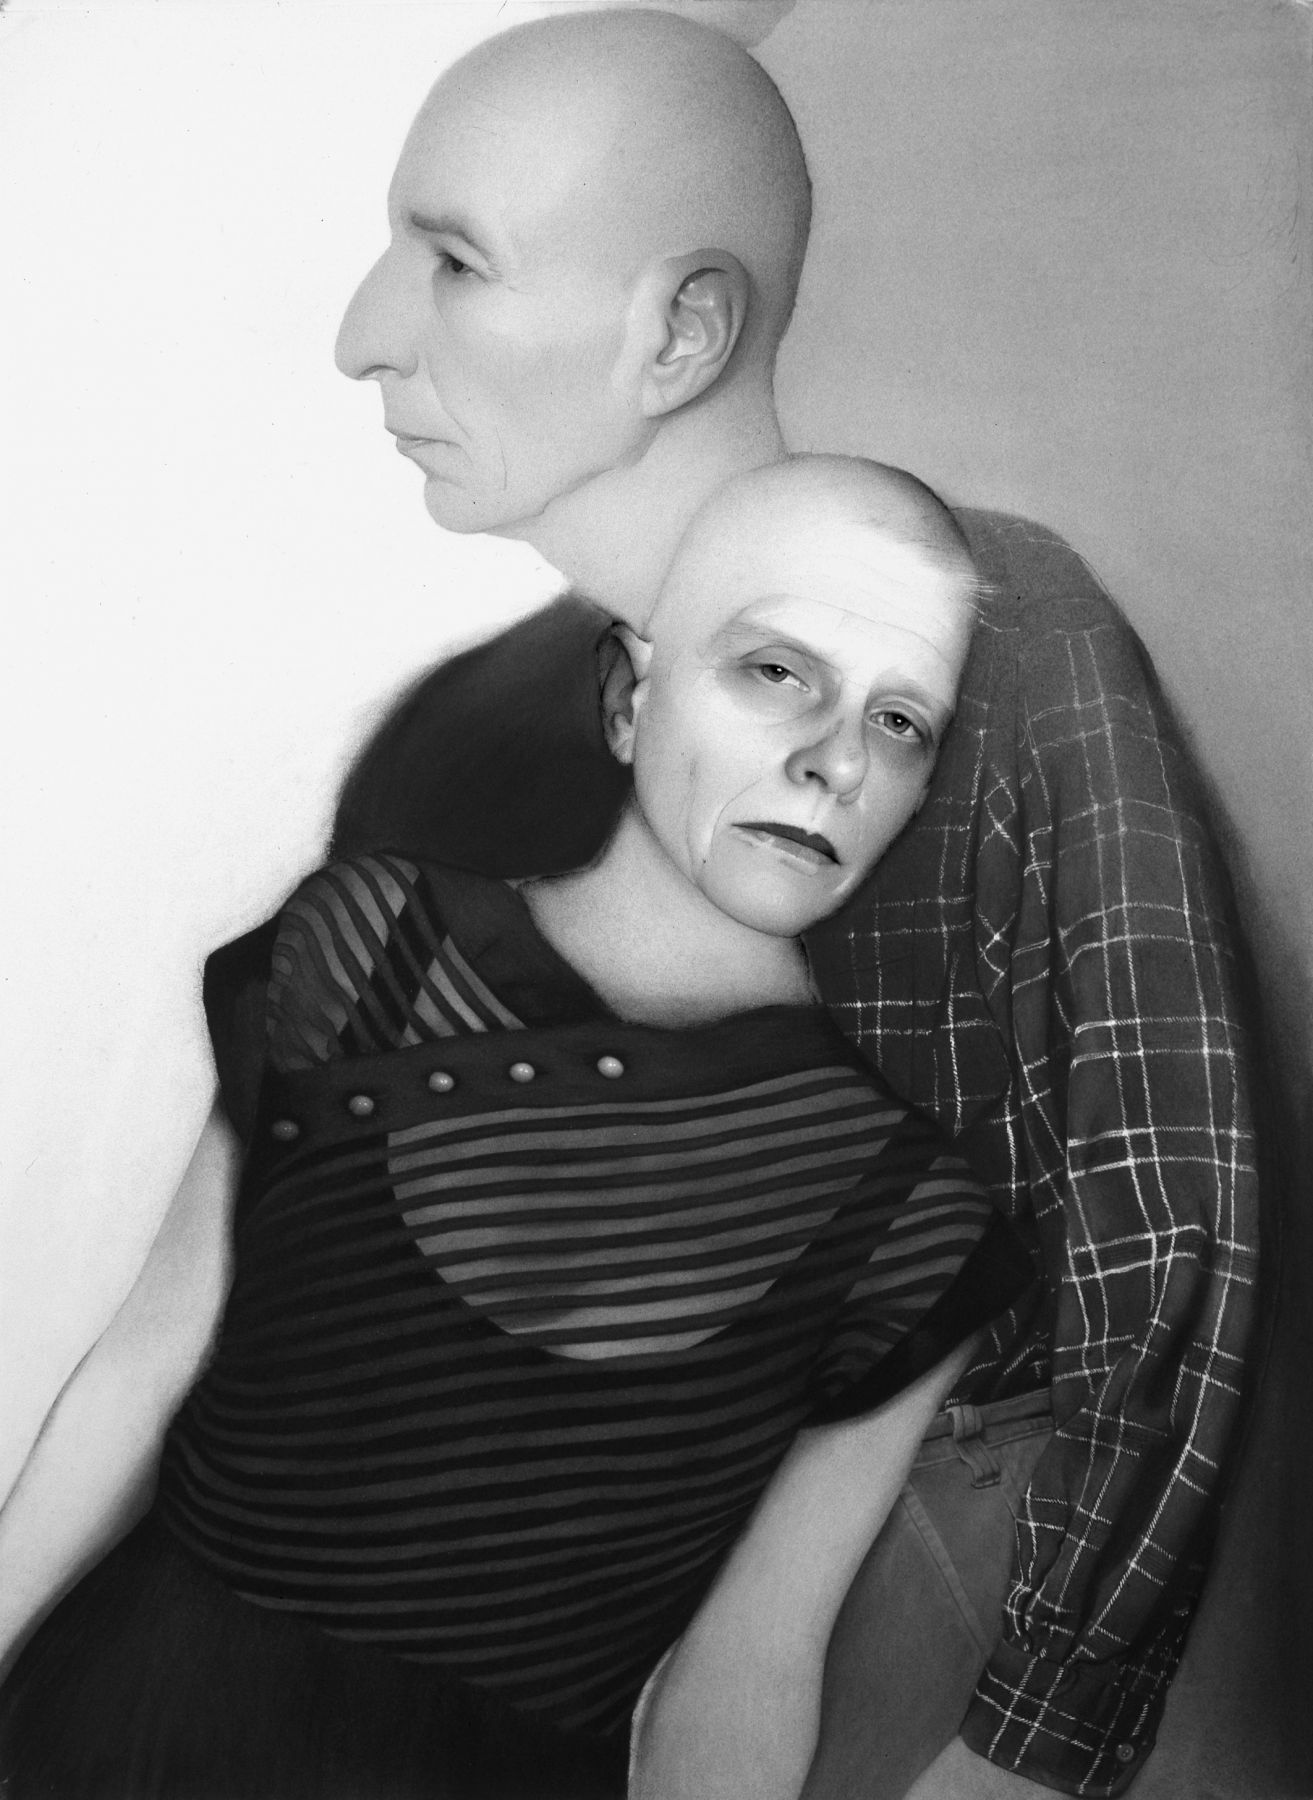 Susan Hauptman, Self-Portrait (with Leonard), 2006, charcoal on paper, 54 x 40 inches